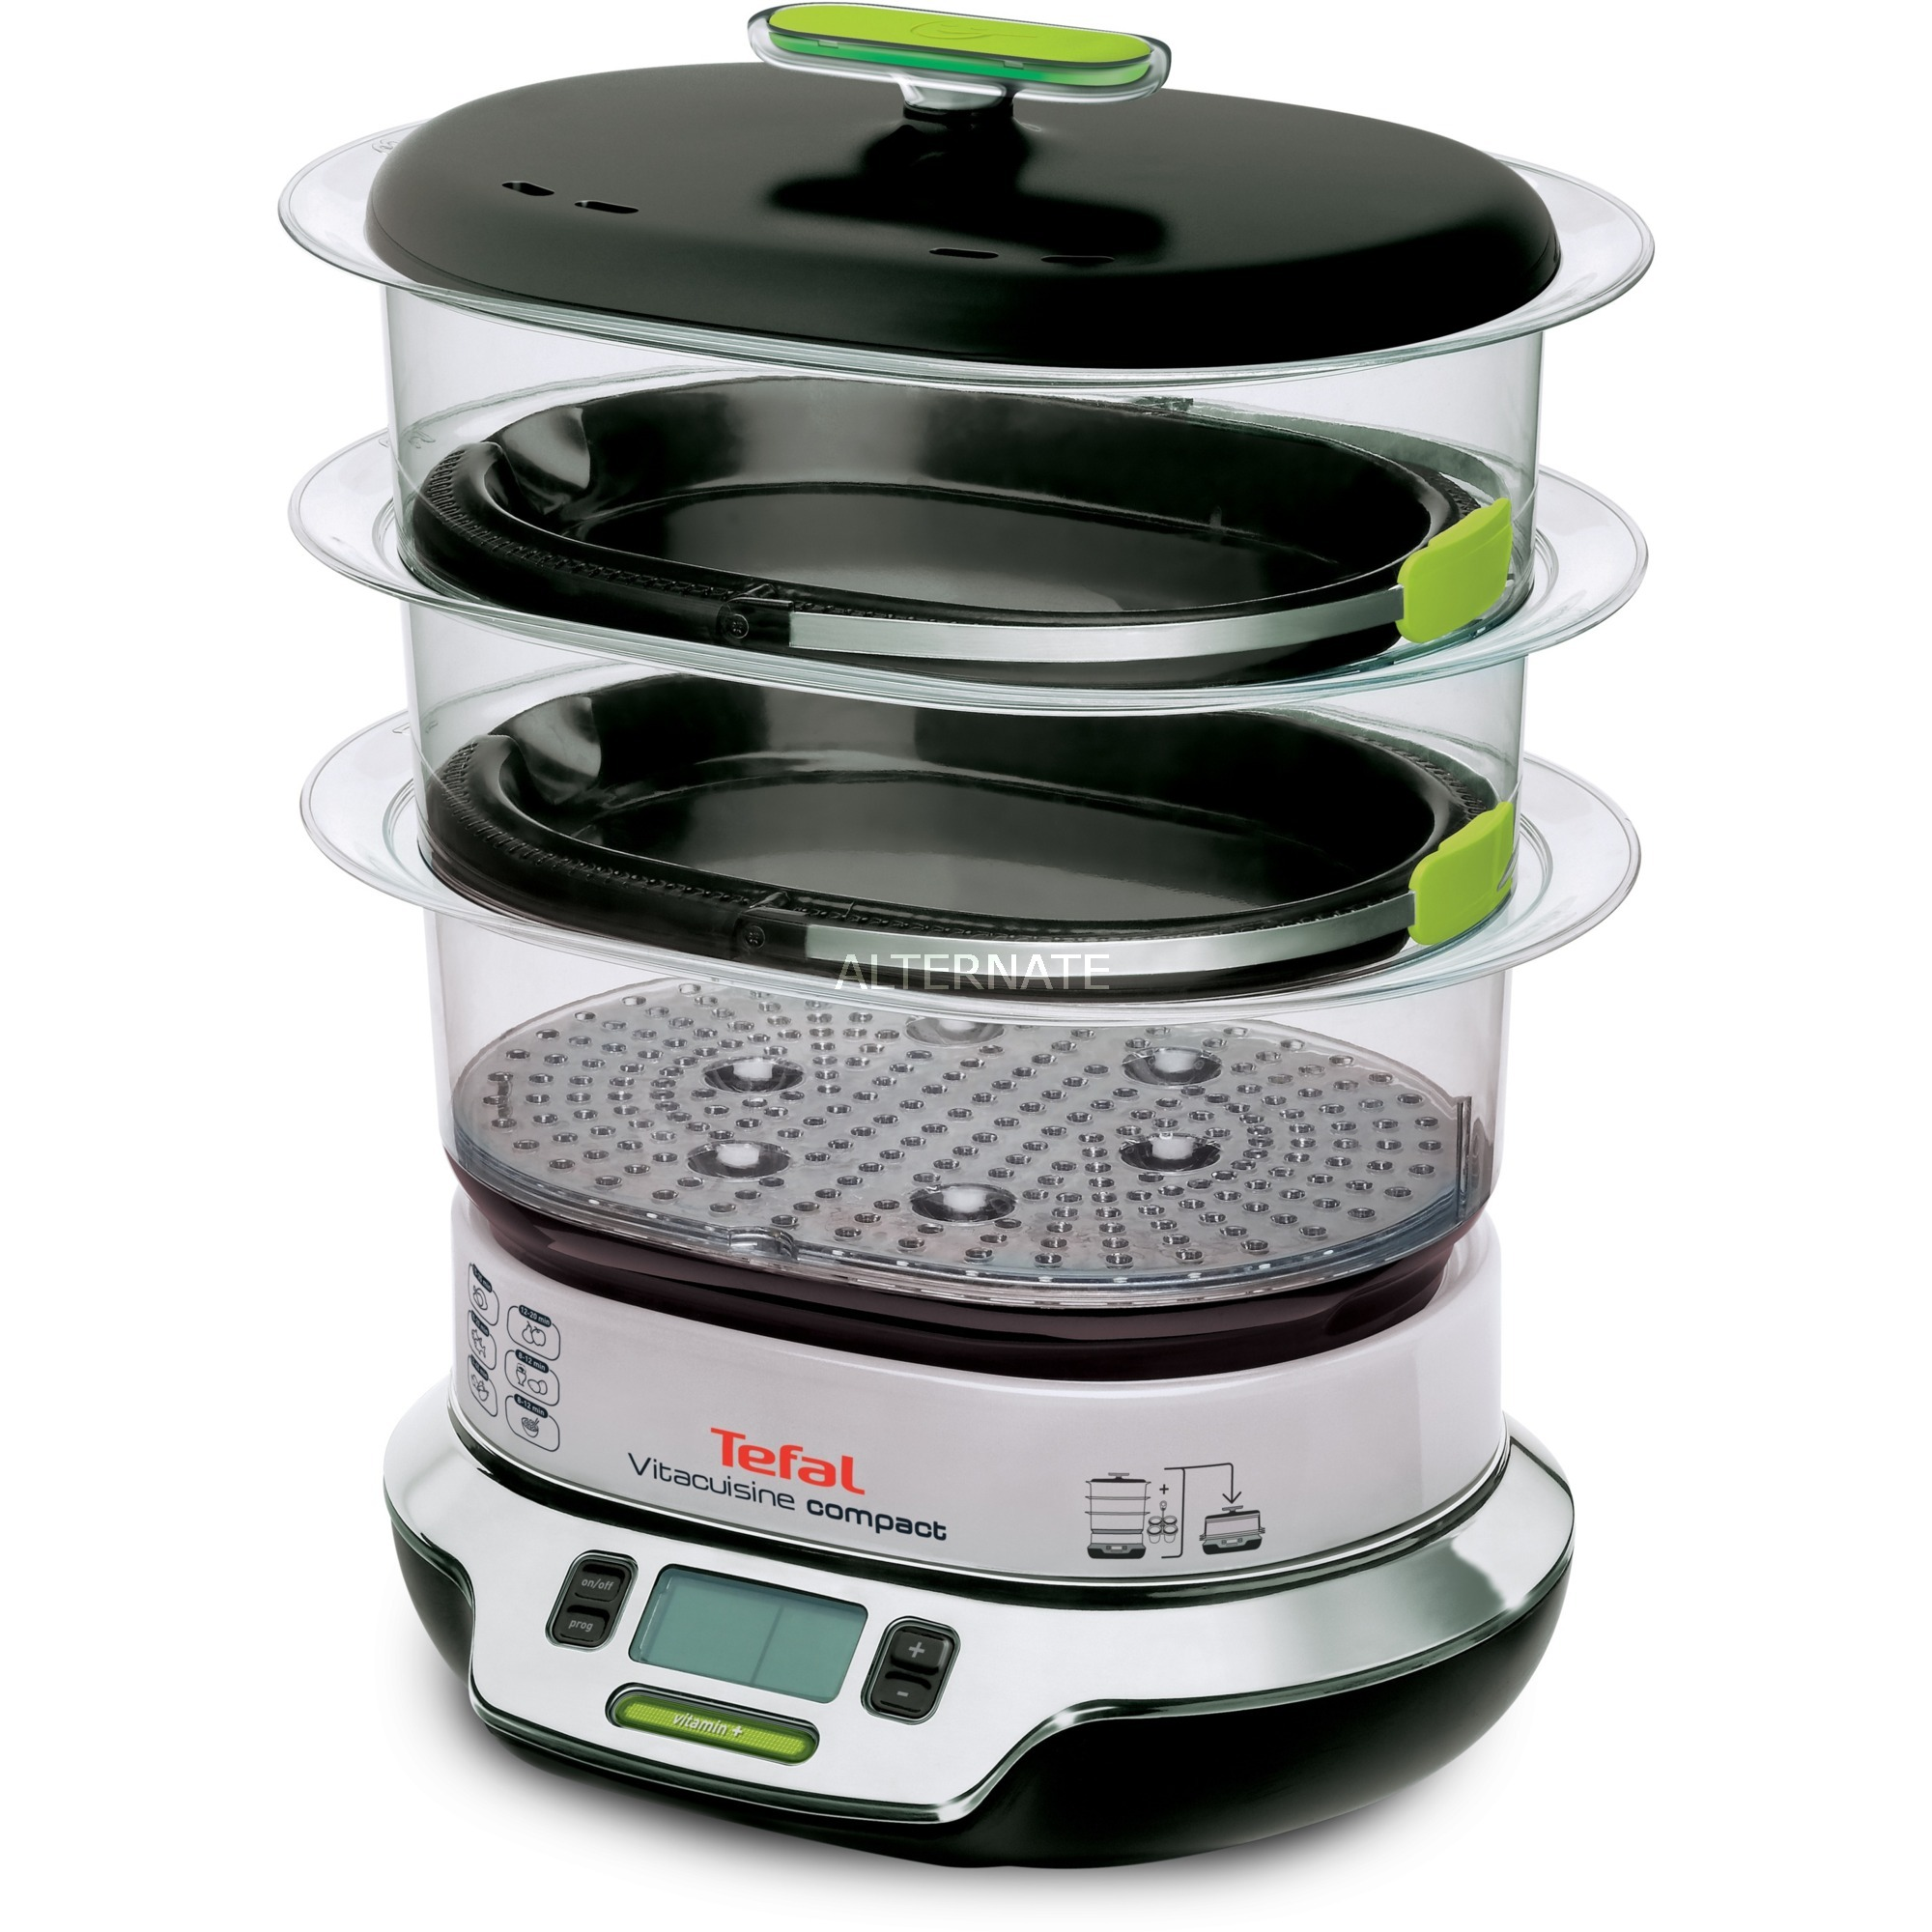 tefal vs4003 vaporiera prezzo e sconti tefal di oggi. Black Bedroom Furniture Sets. Home Design Ideas